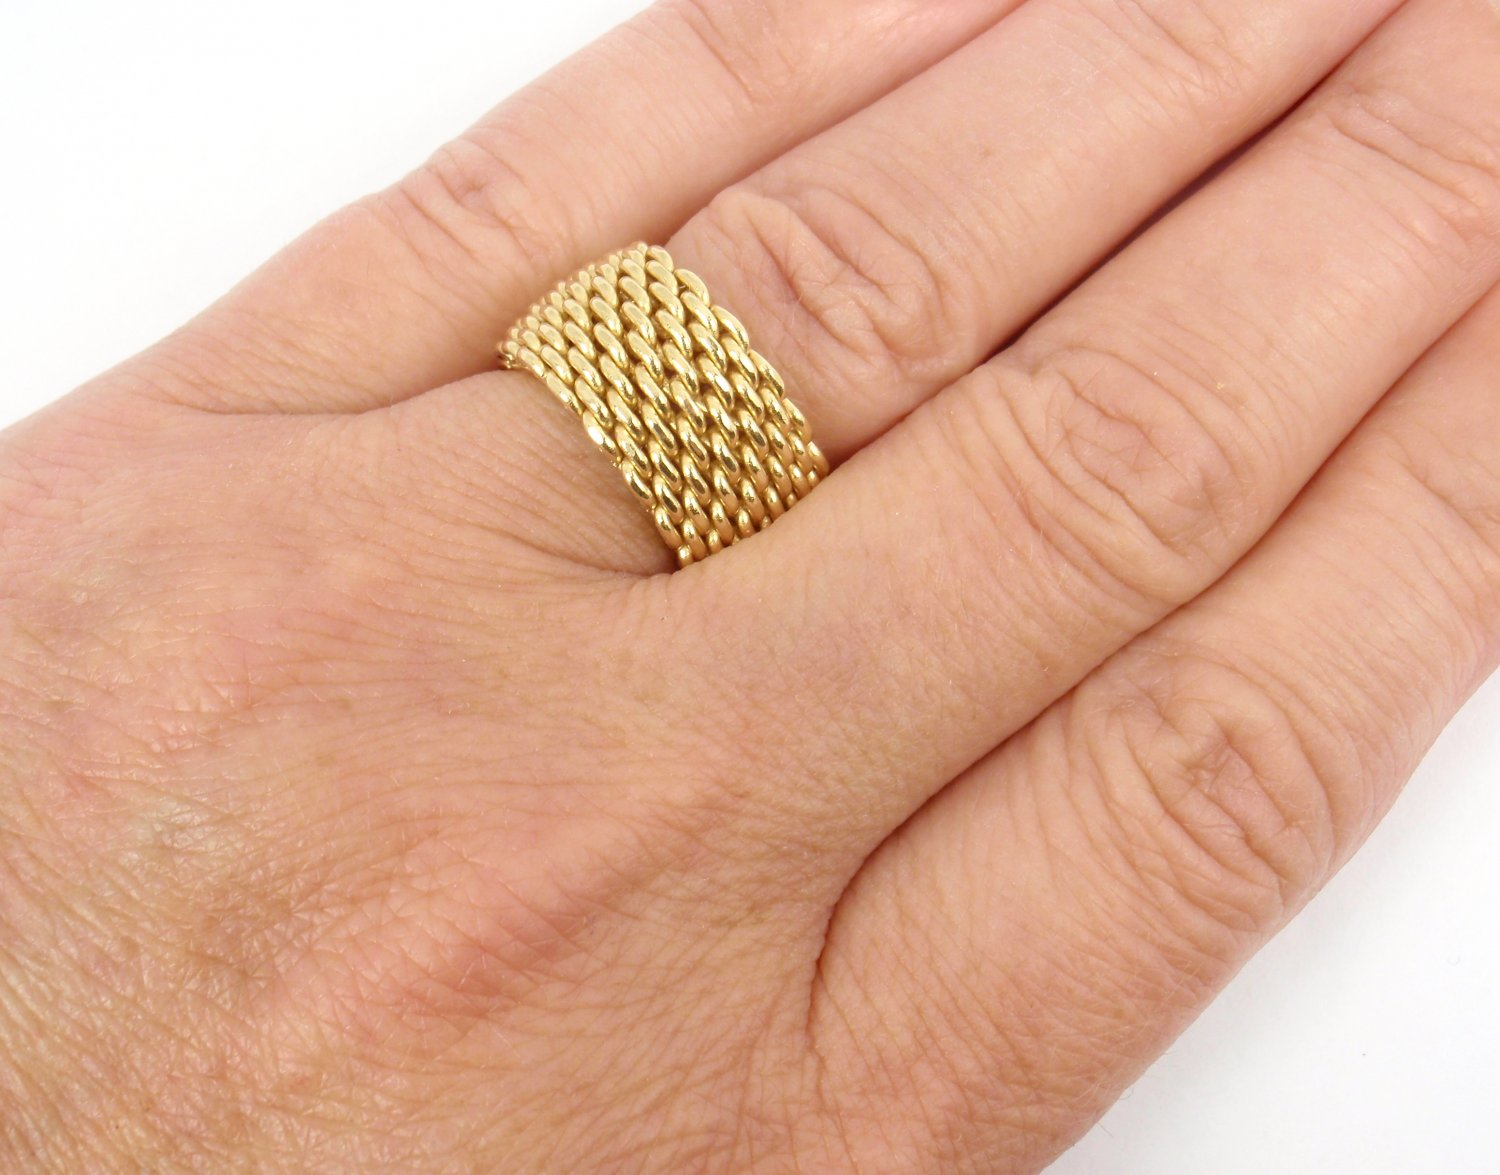 afcec8fe8ebfc $2200 Tiffany & Co 18K Yellow Gold Somerset WIDE Mesh Band Ring Size 7